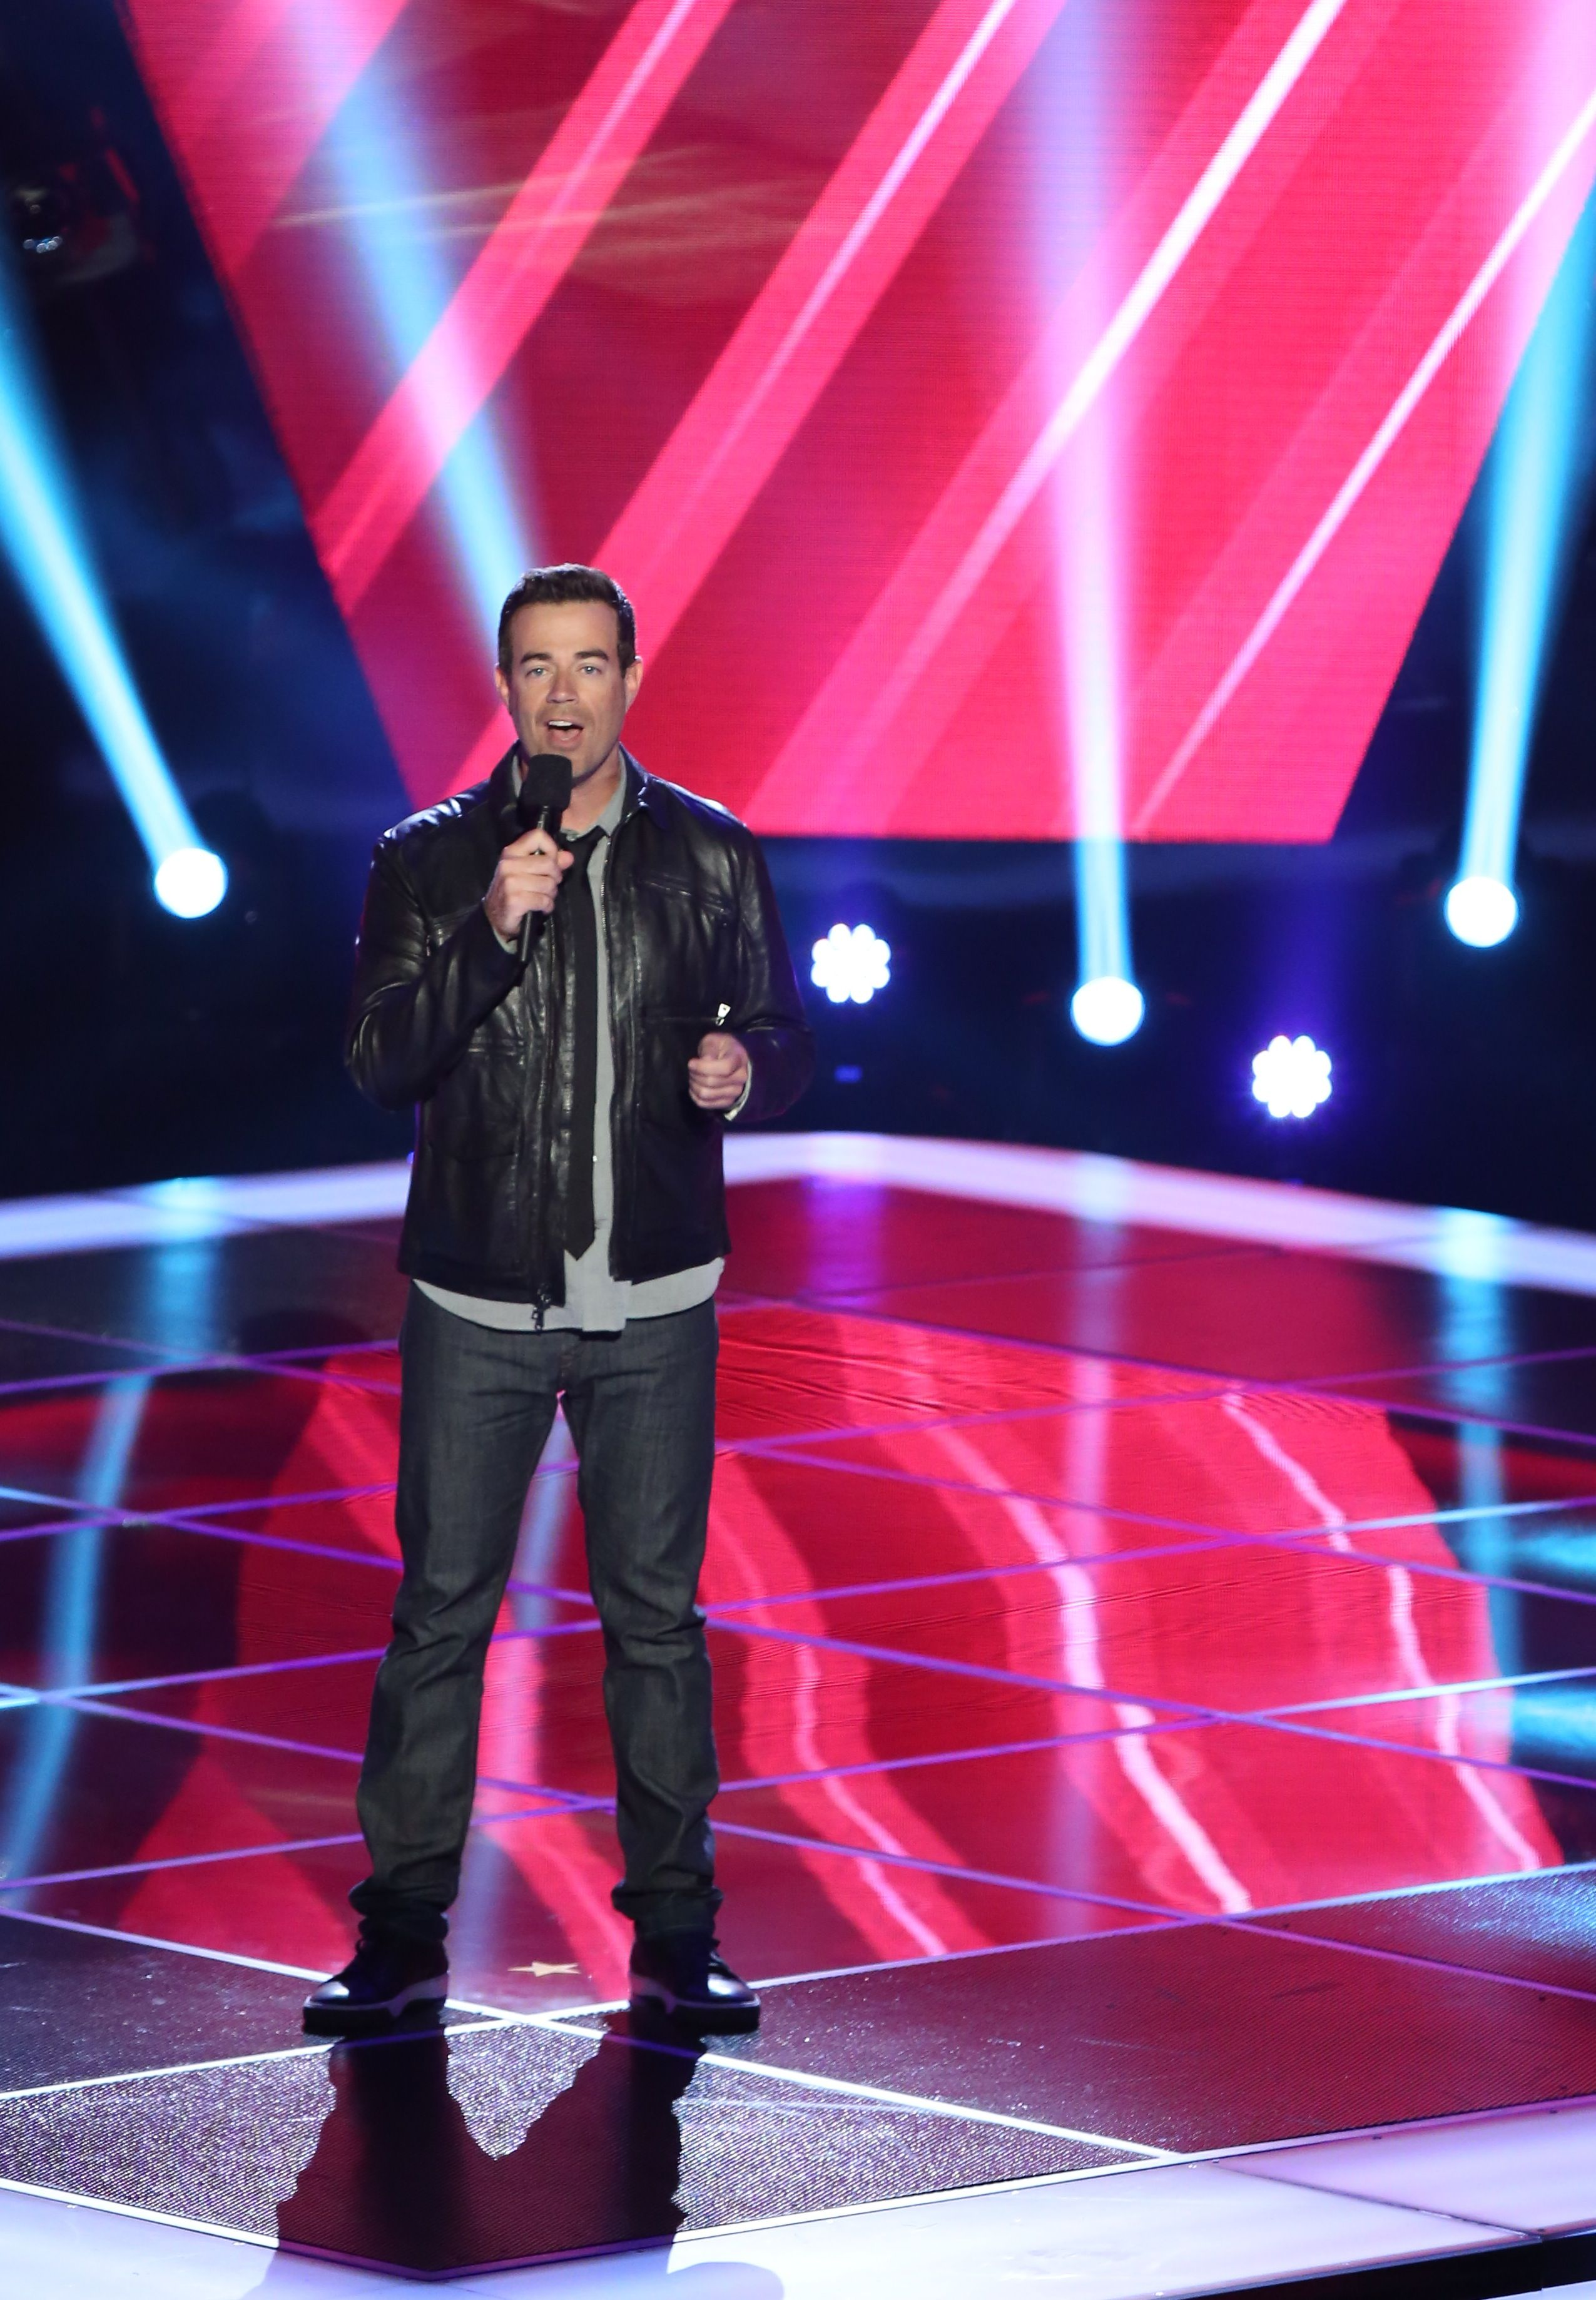 Carson Daly Thevoice With Images Carson Daly Reality Tv